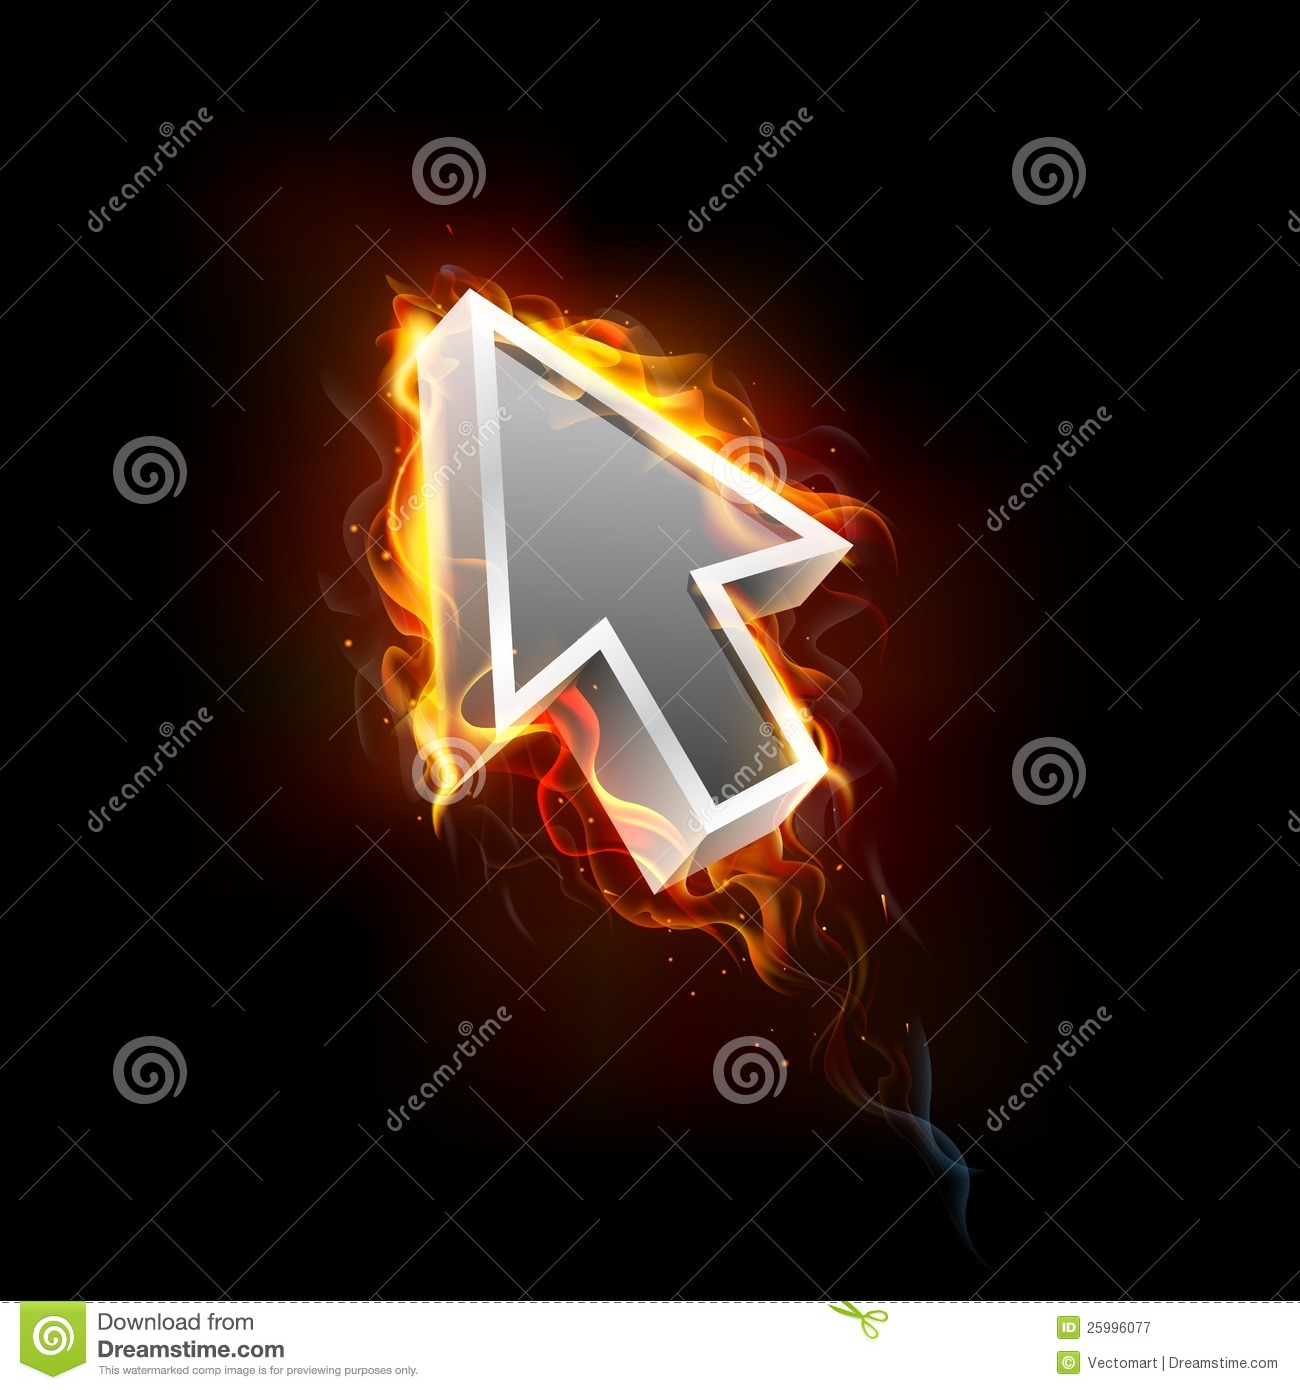 Mouse Pointer Stock Illustrations 26 483 Mouse Pointer Stock Illustrations Vectors Clipart Dreamstime Arrow mouse cursor arrow mouse cursor cursor mouse arrow symbol shape 3d element modern icon decoration contemporary sign decorative three dimensional direction template artistic colorful eps10 shiny arrows collection background shaped color ornament threedimensional emblem circle. dreamstime com